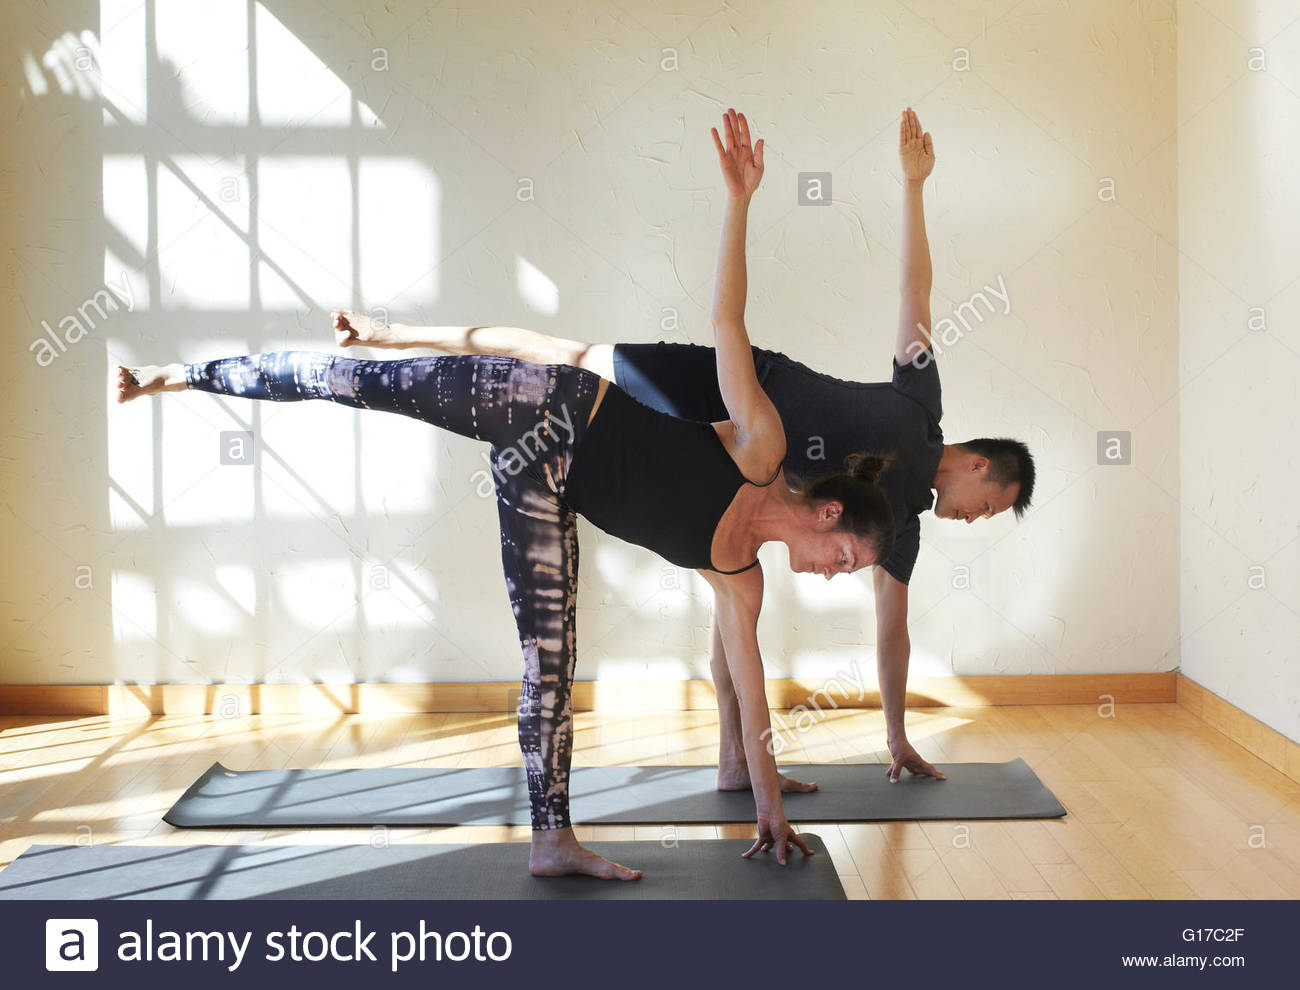 Man and woman doing yoga in studio, in half moon position - Stock Image